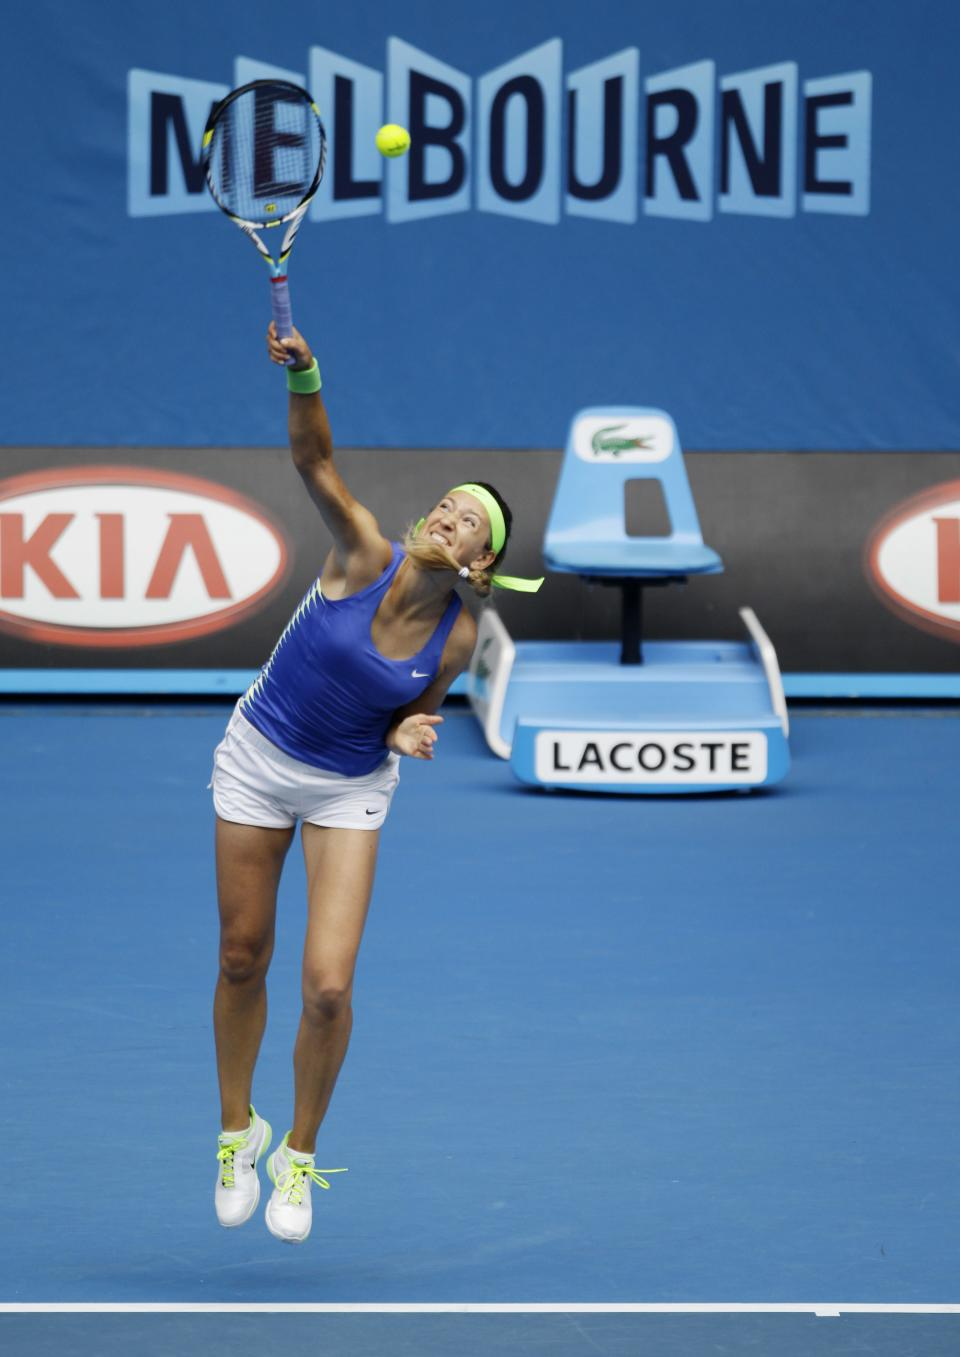 Victoria Azarenka of Belarus serves to Germany's Mona Barthel during their third round match at the Australian Open tennis championship, in Melbourne, Australia, Friday, Jan. 20, 2012. (AP Photo/Sarah Ivey)